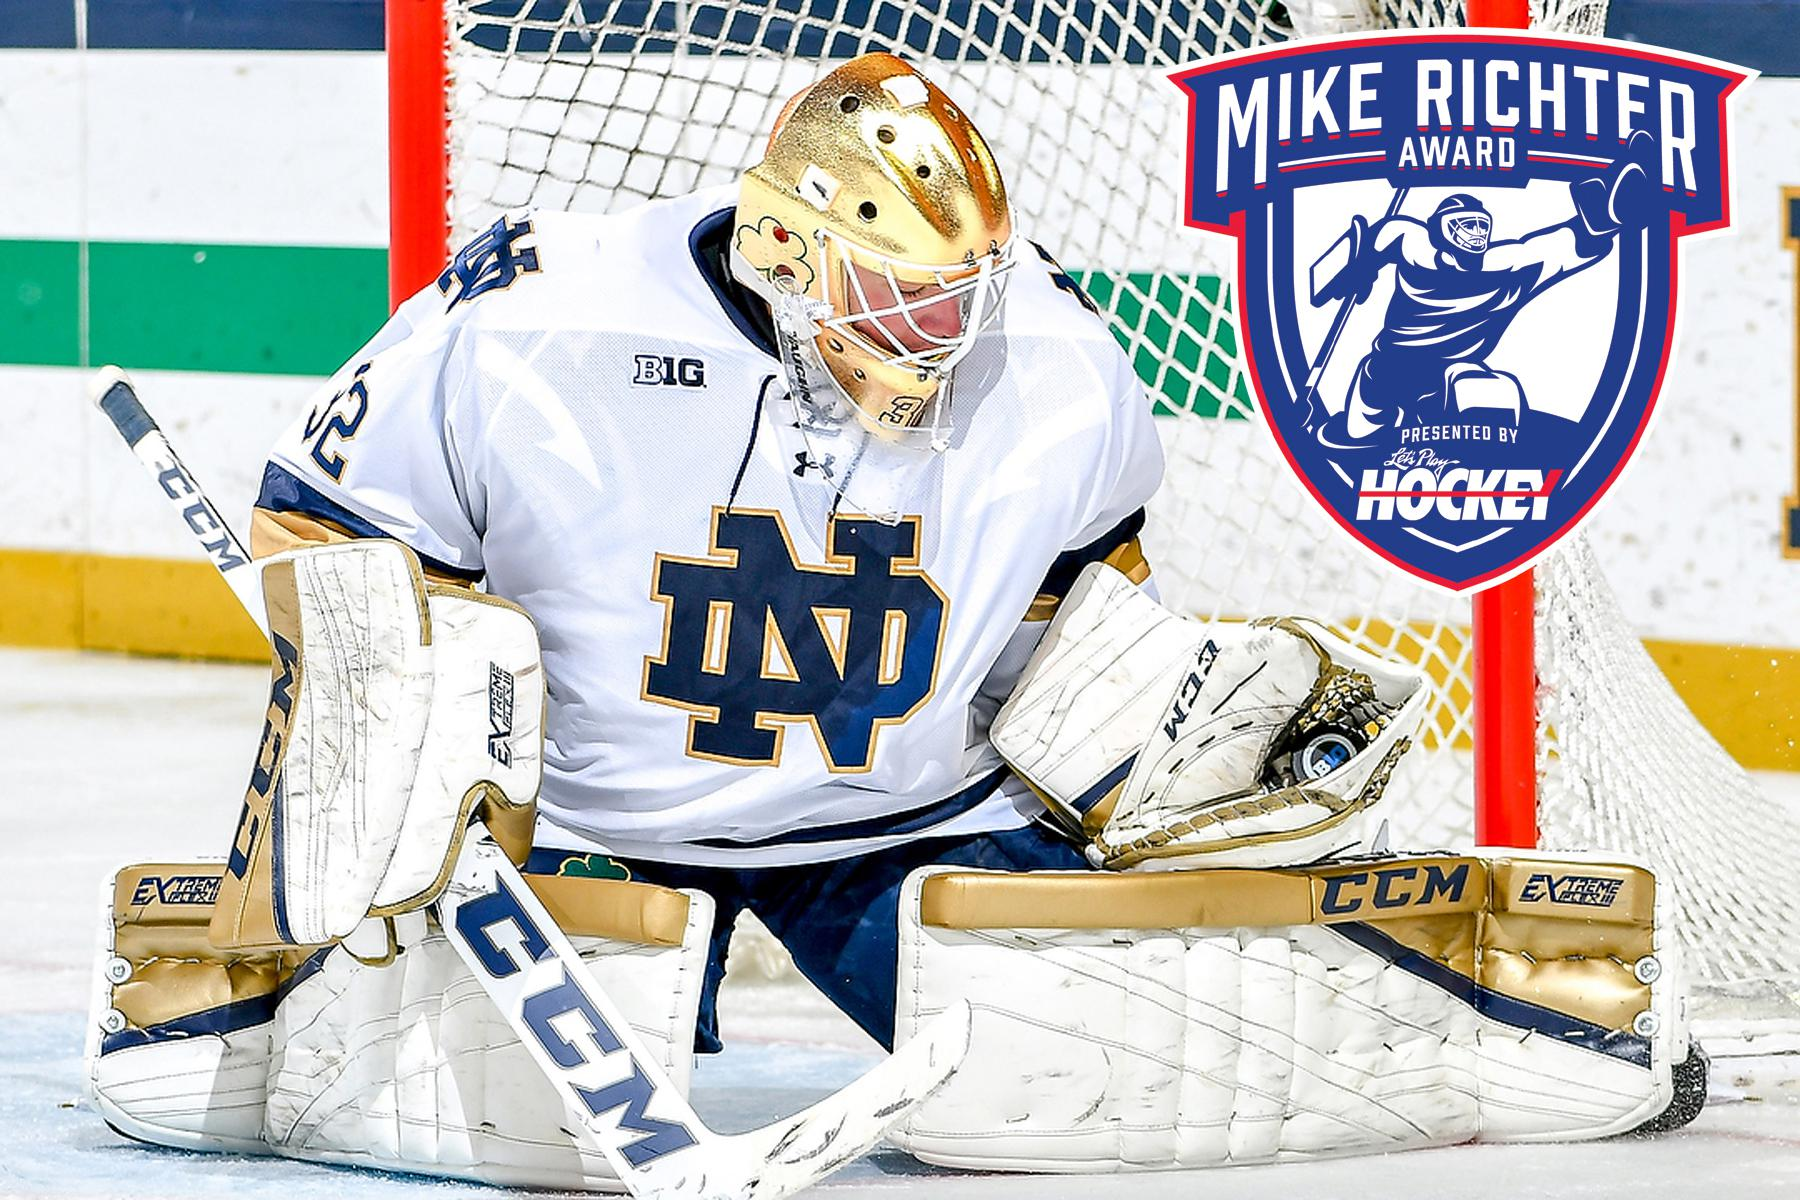 Cale Morris Of Notre Dame Named Winner Of 2018 Mike Richter Award